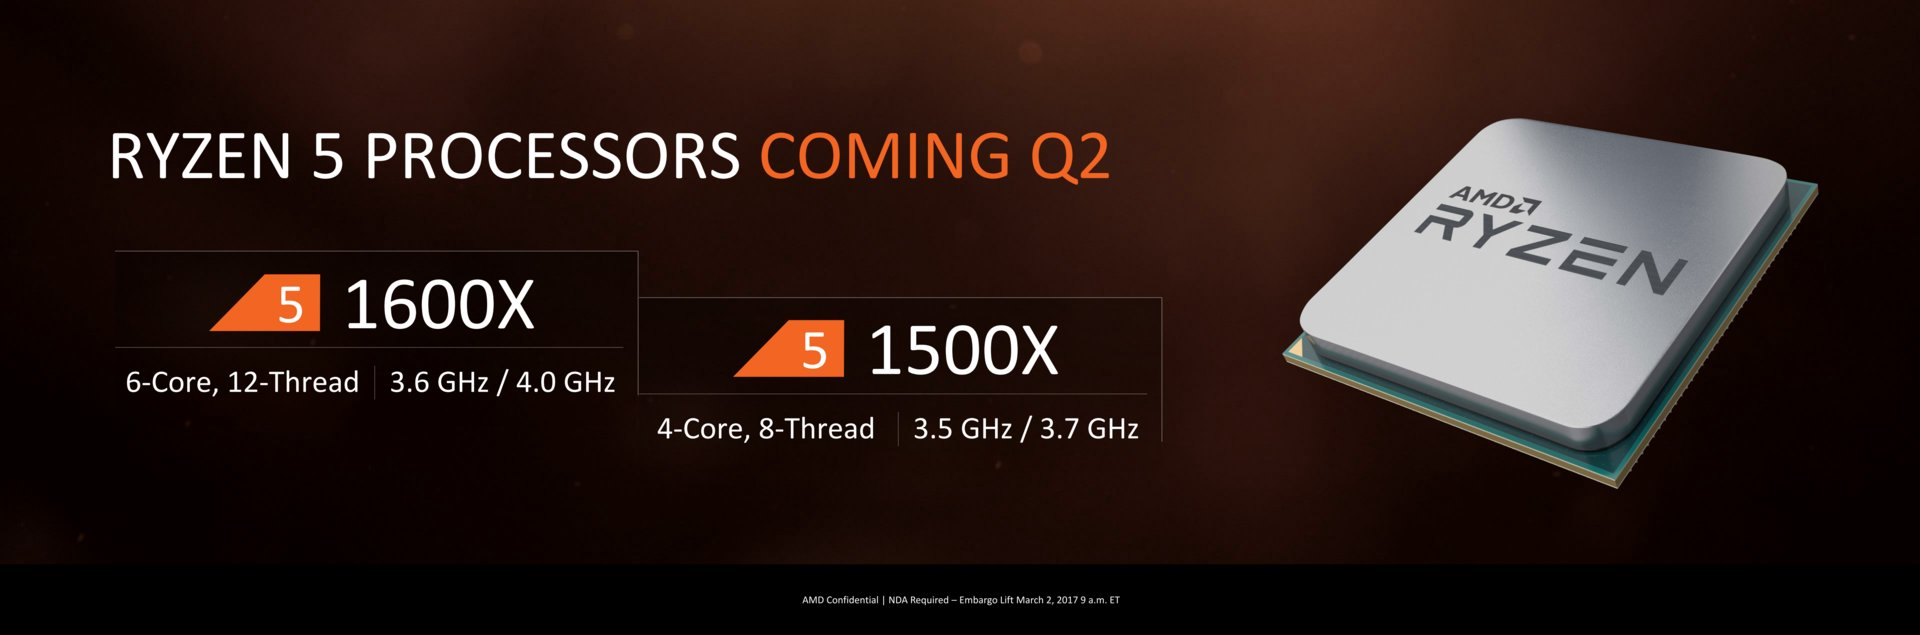 amd-ryzen-5-1600x-and-ryzen-5-1500x